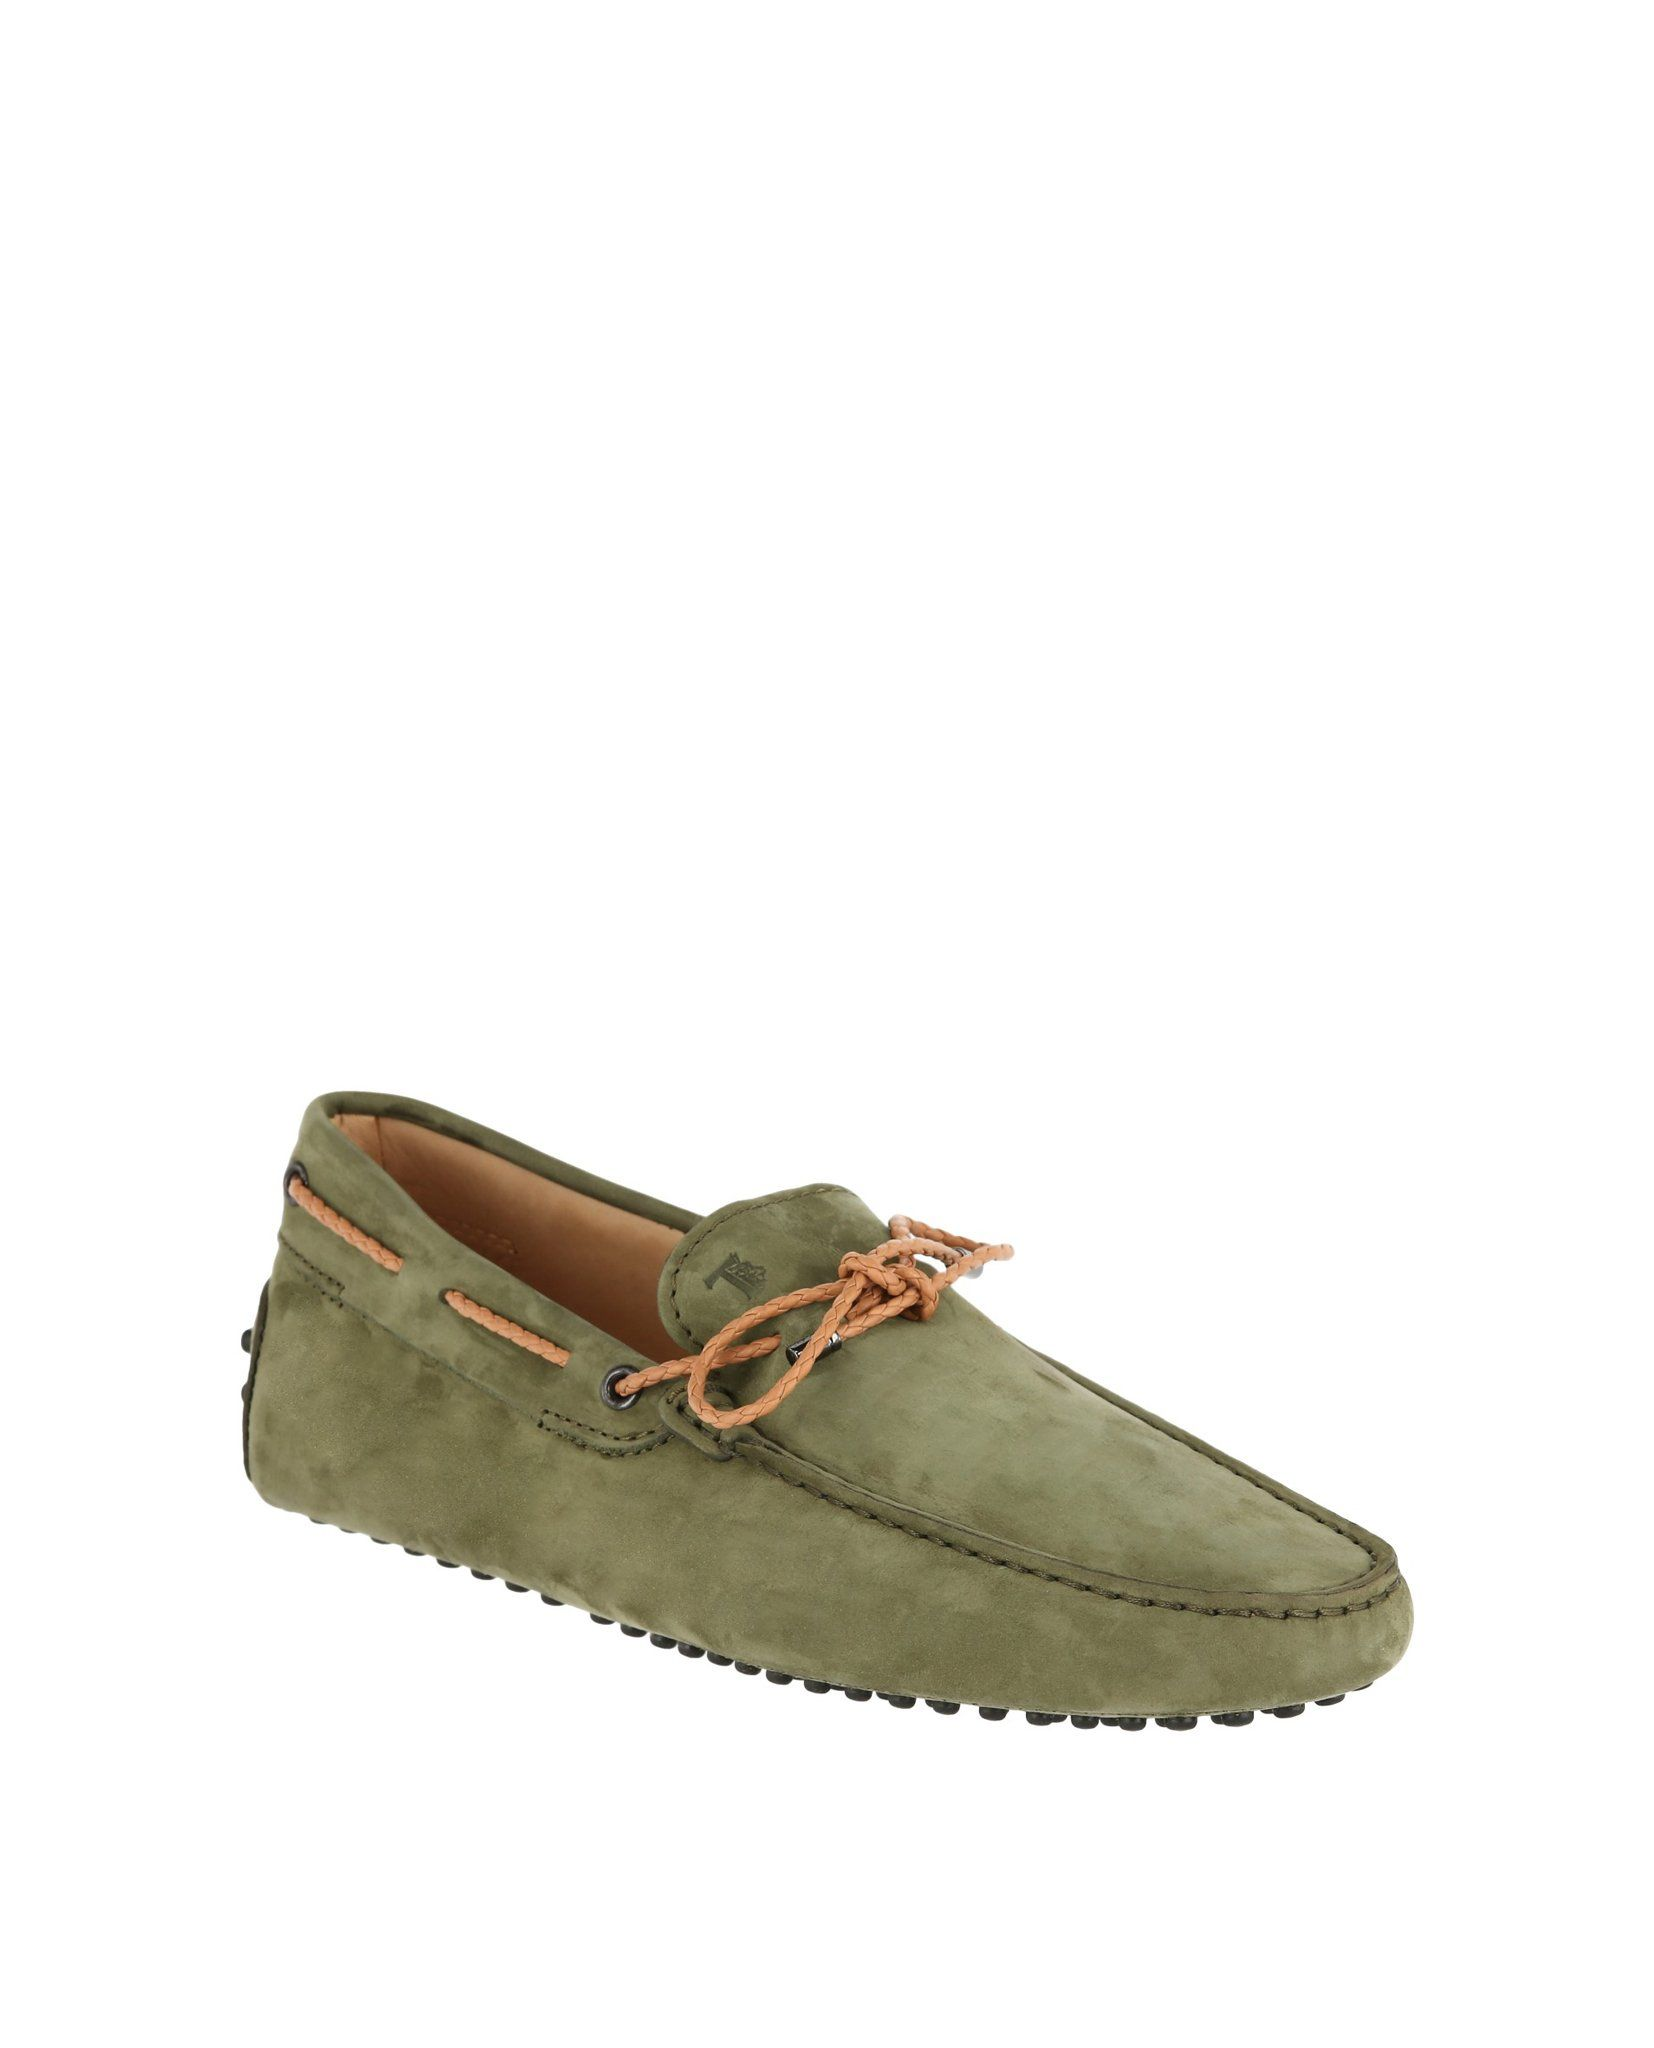 e742003ef4b TOD'S Gommino Driving Shoes In Suede | Designer Shoes On Sale | Men's  Designer Fashion Discount | #madaluxevault #tods